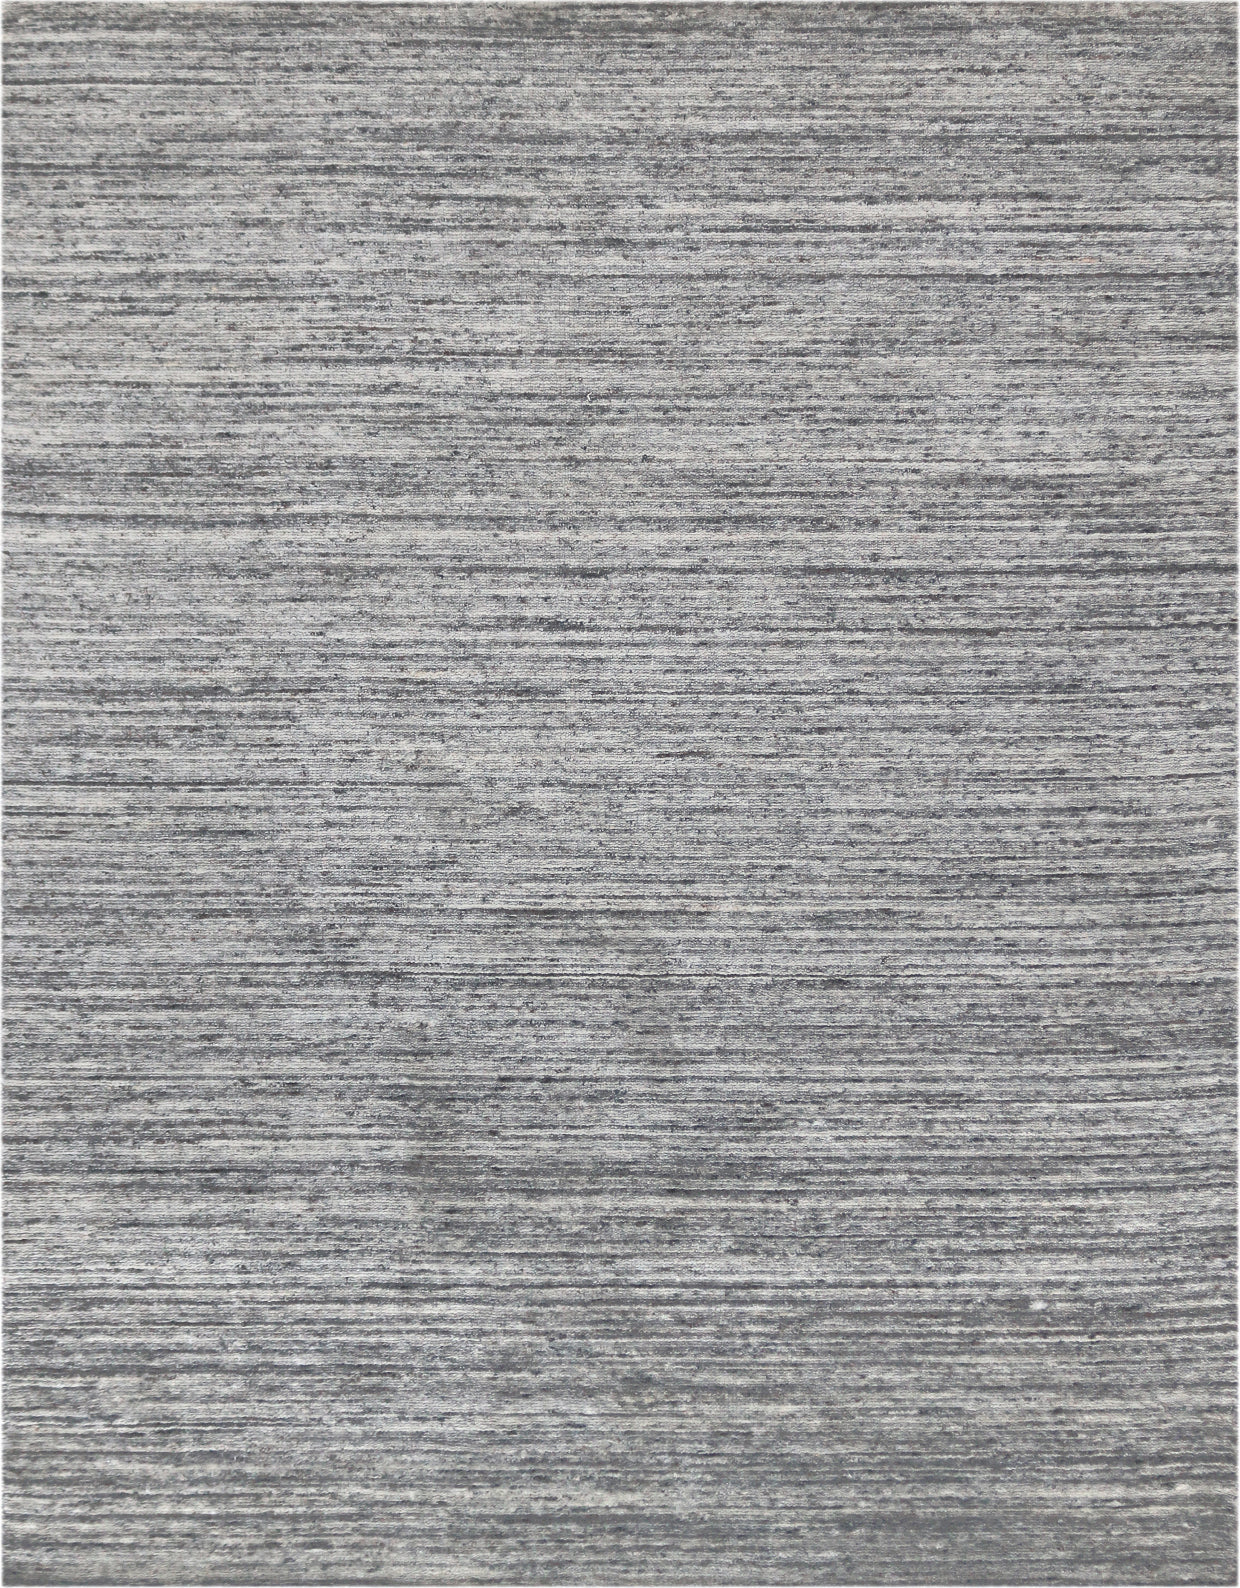 Amer Heaven HEA-1 Gray Area Rug main image